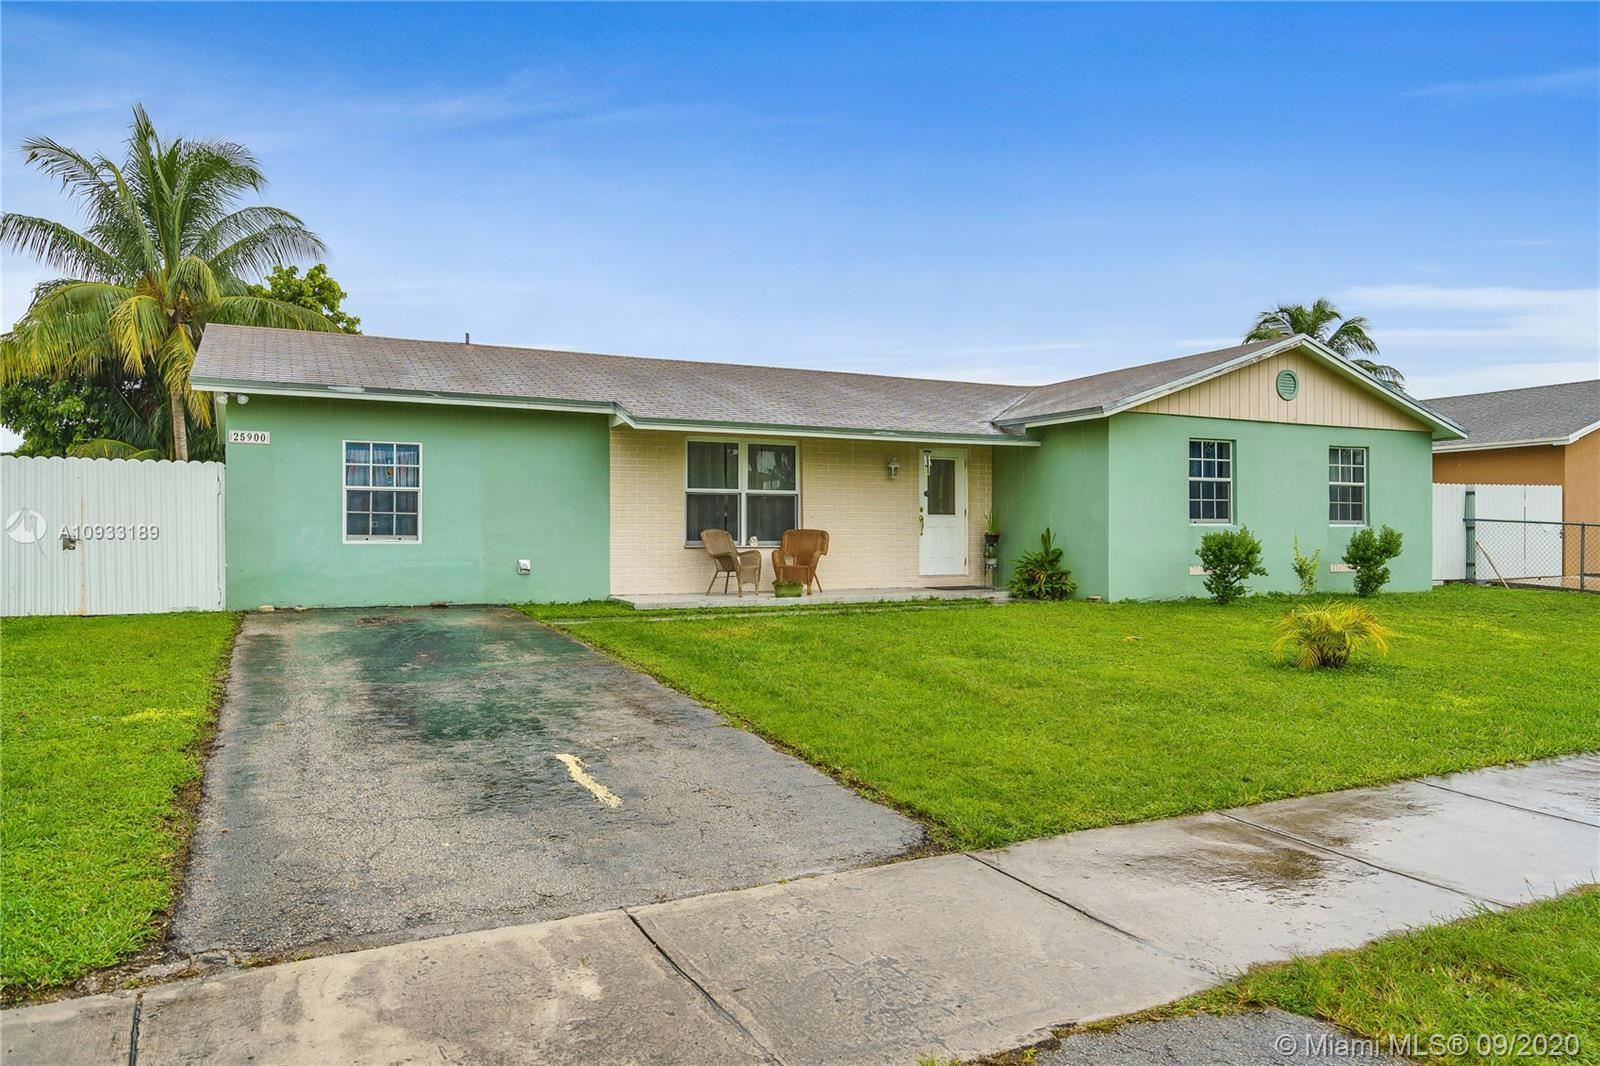 25900 SW 132nd Pl, Homestead, FL 33032 - #: A10933189